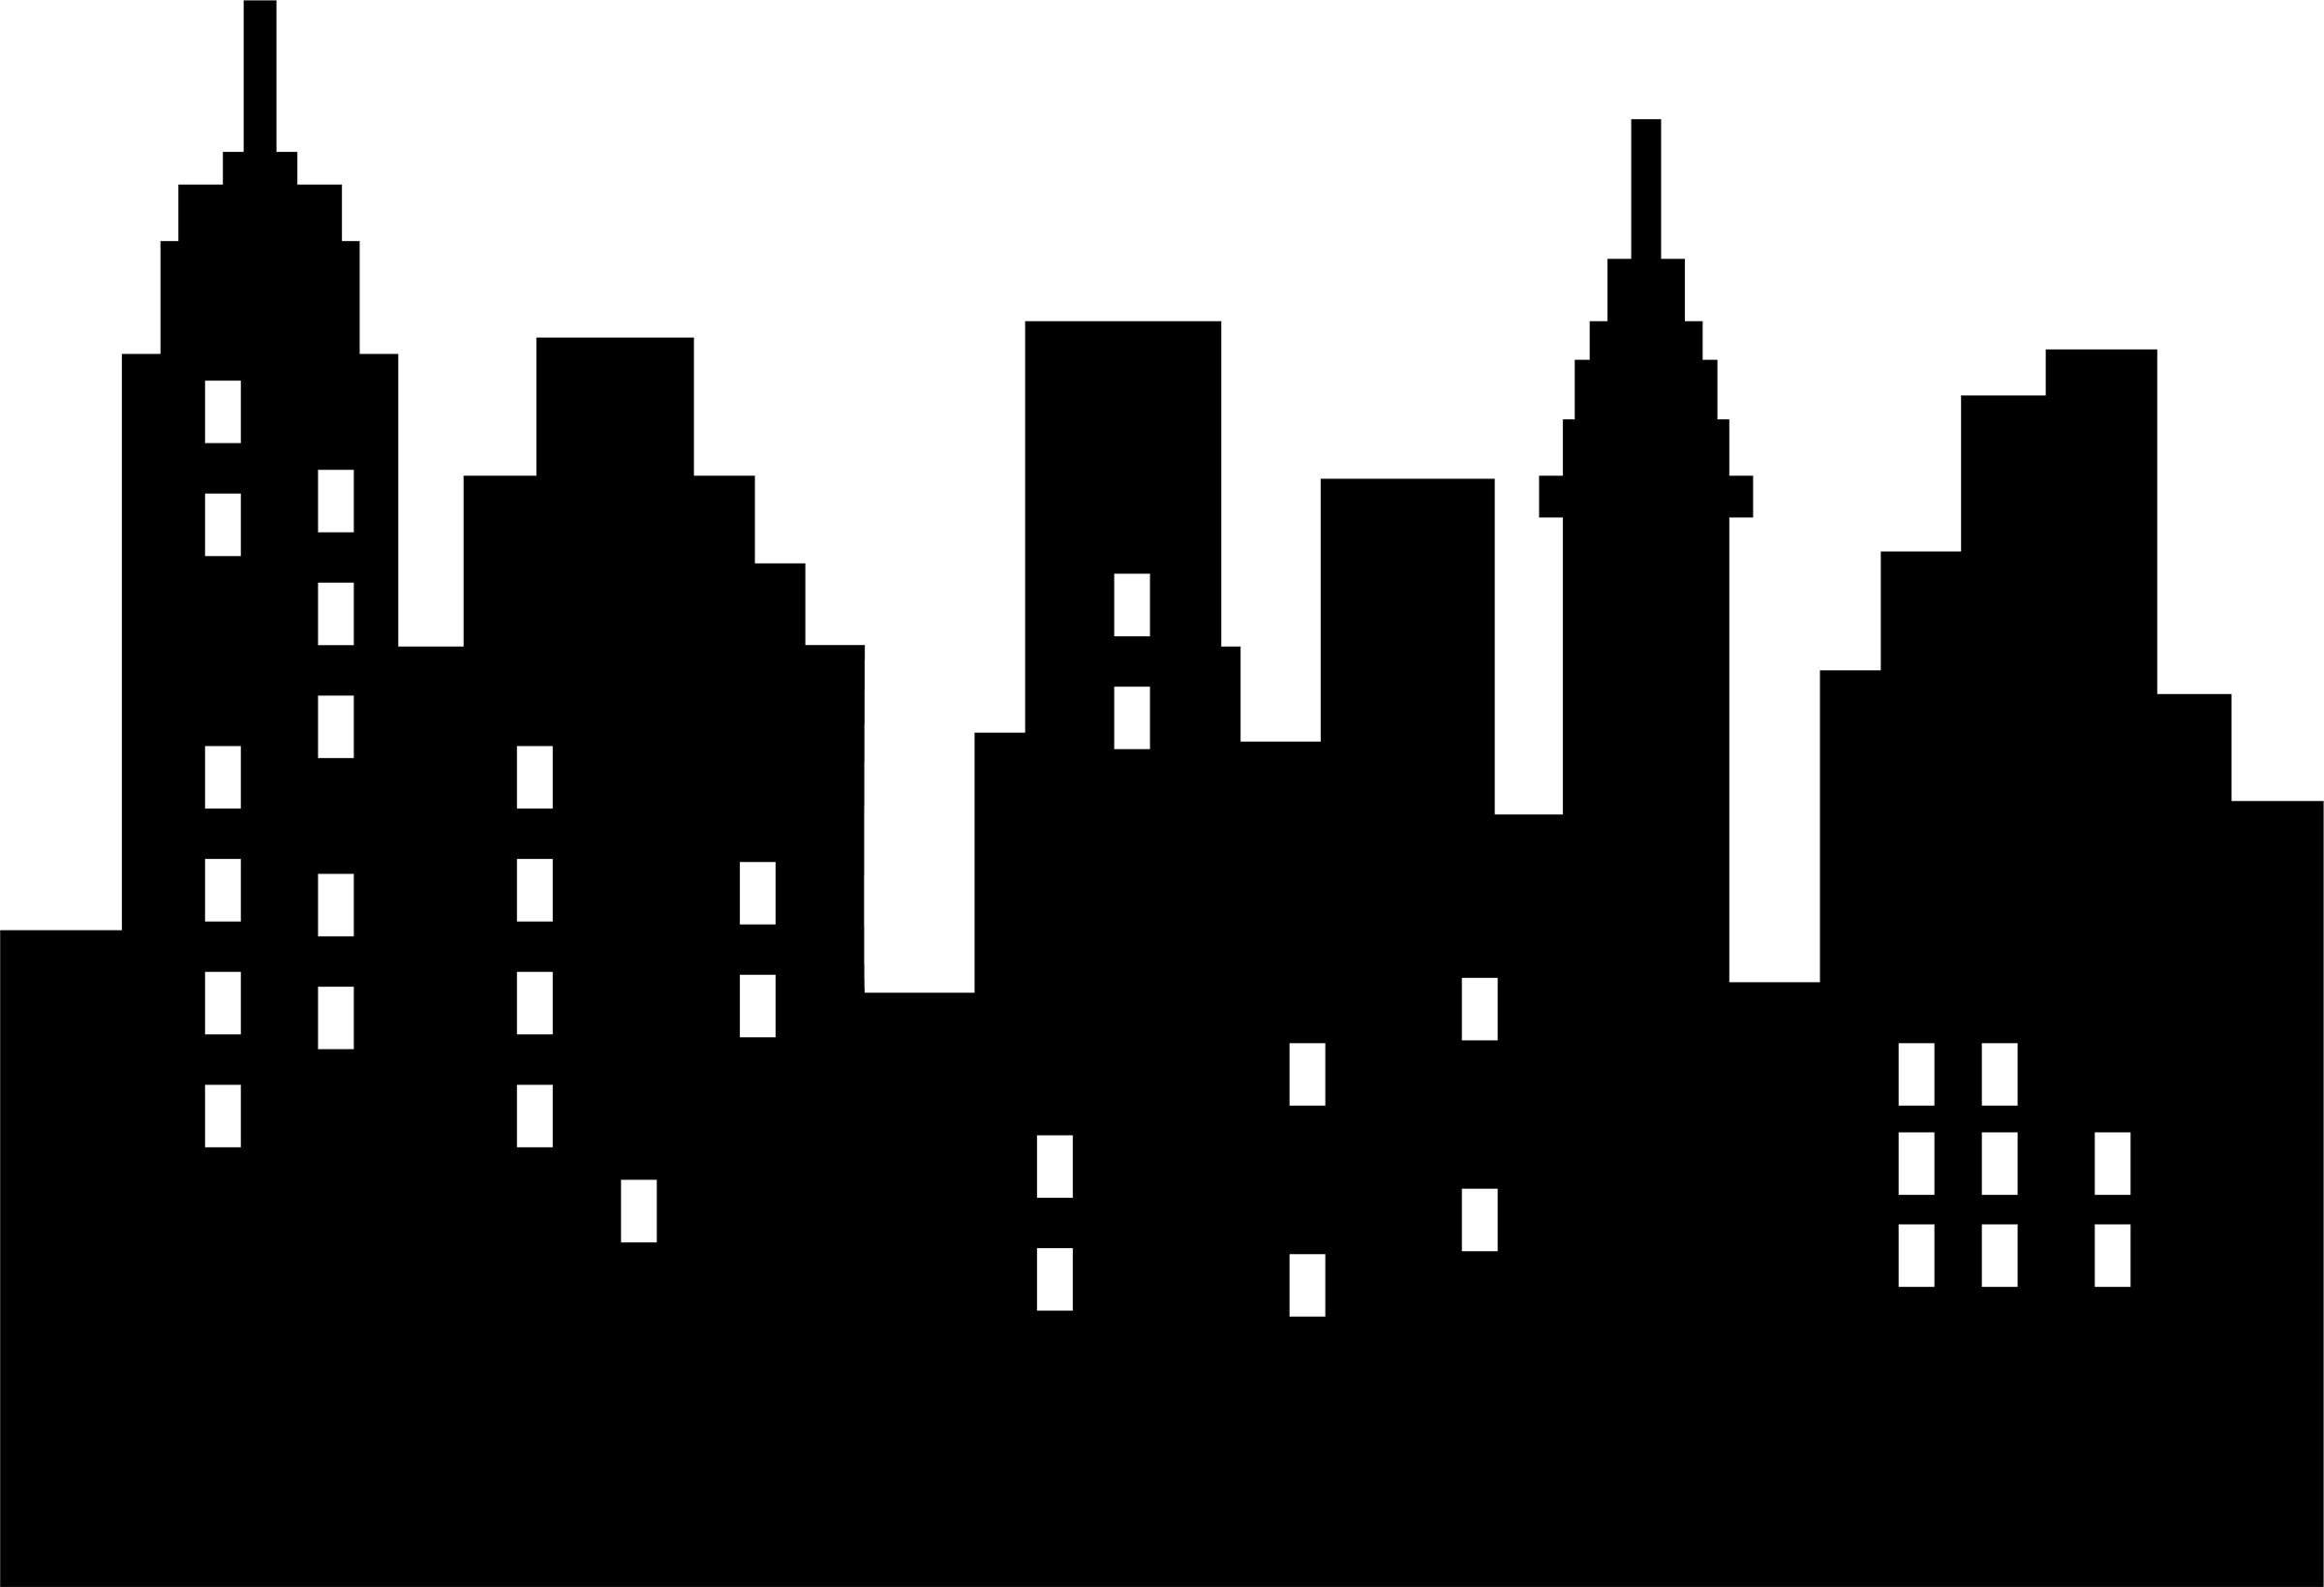 Skyline clipart #5, Download drawings